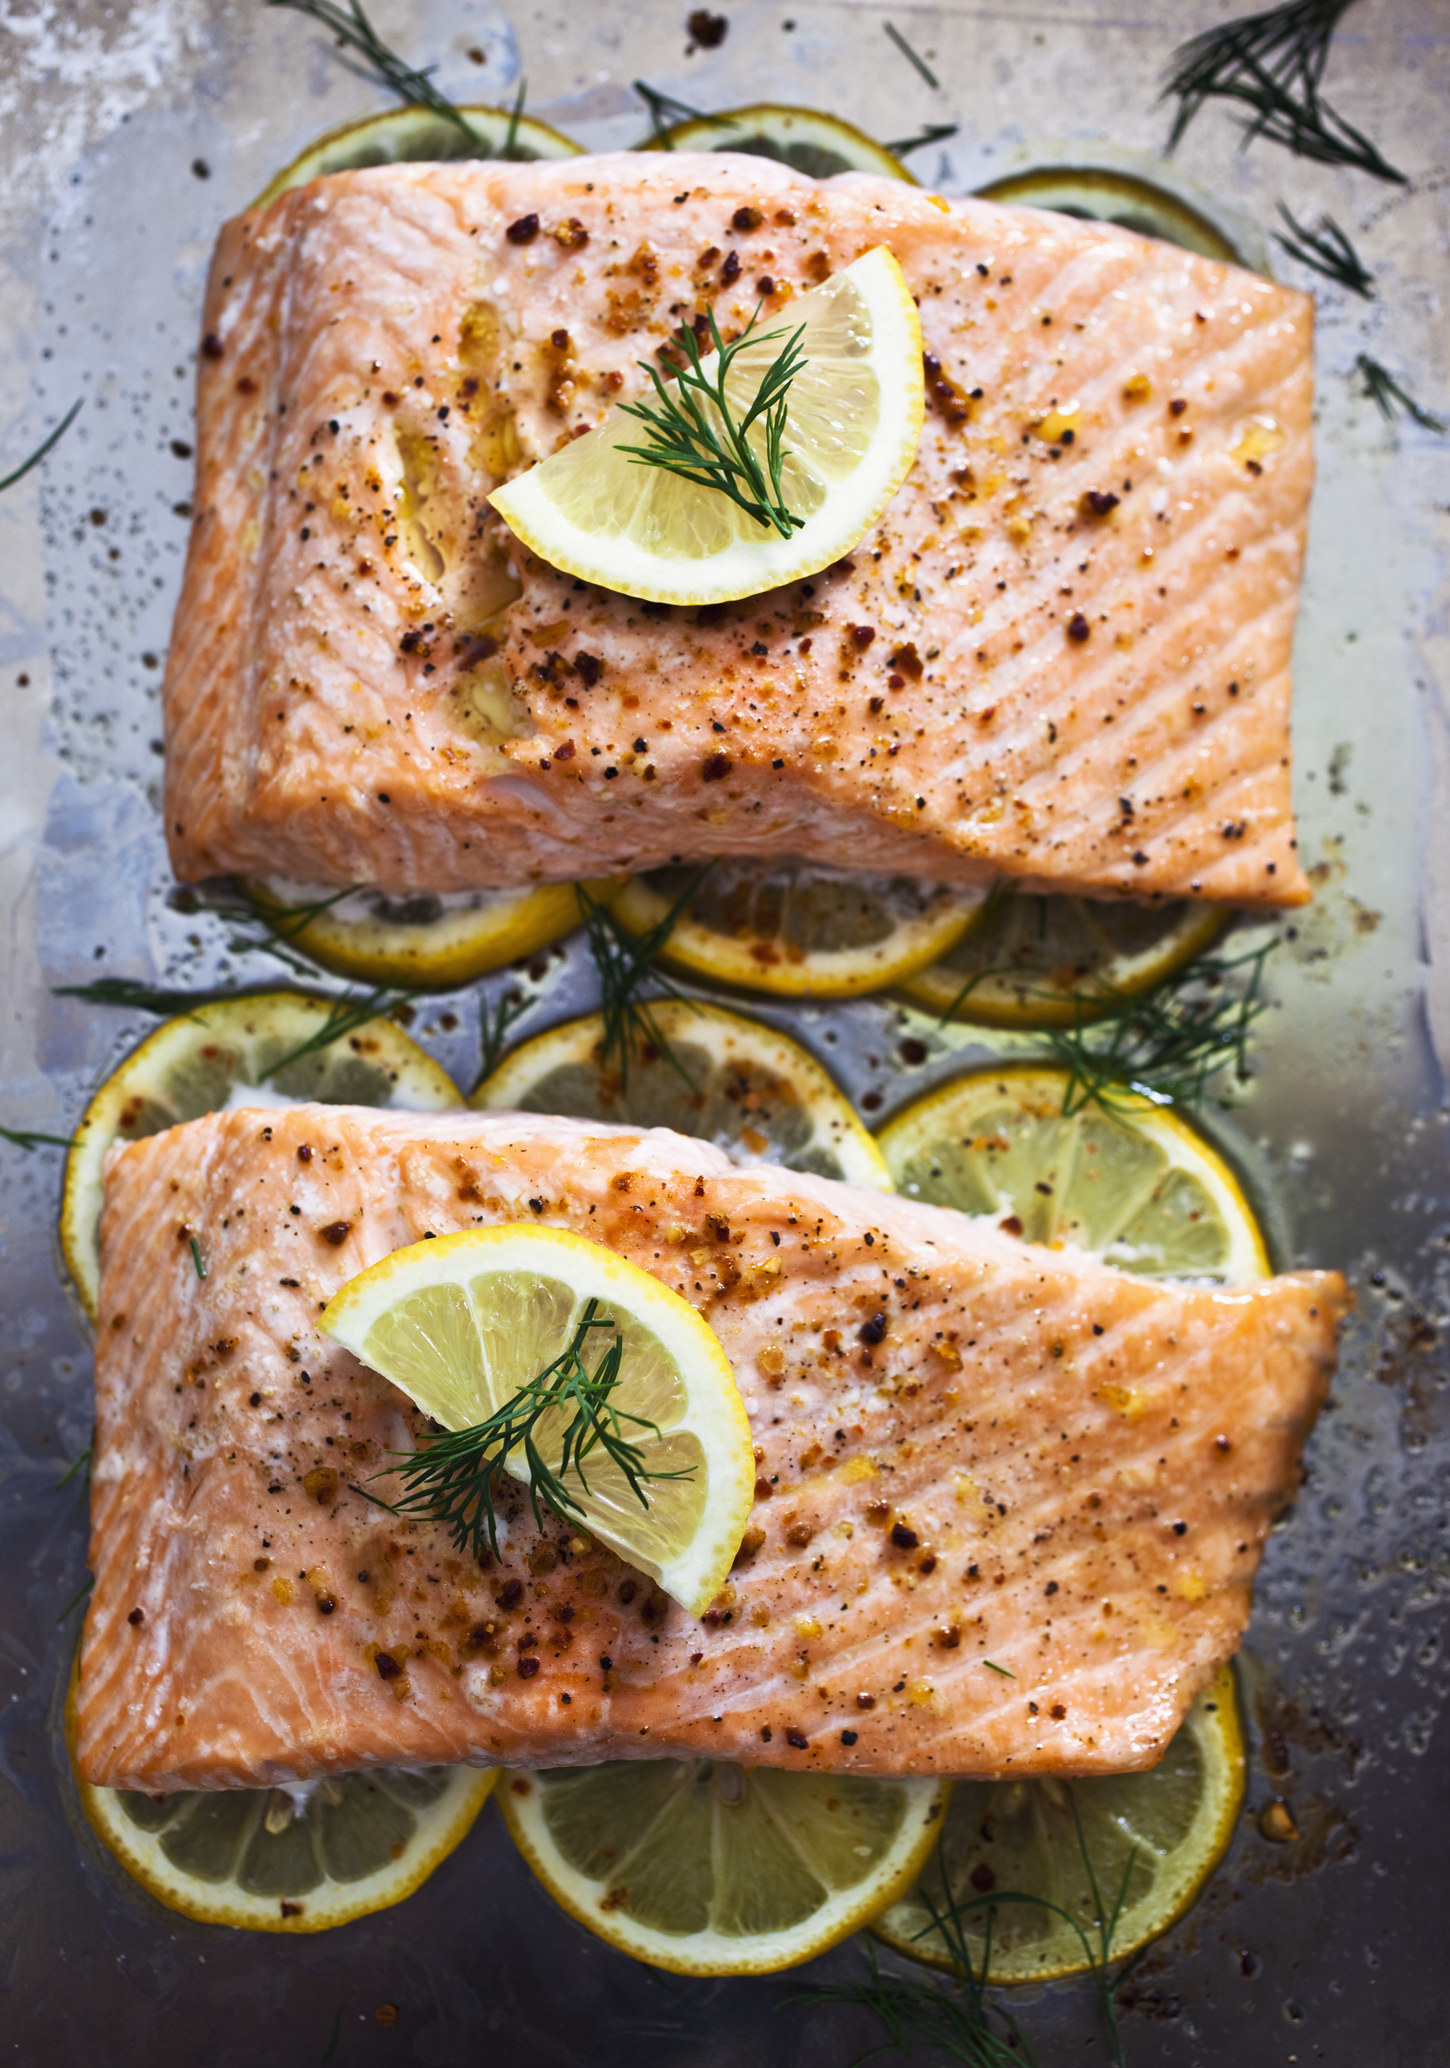 Two pieces of roast salmon over sliced lemon.